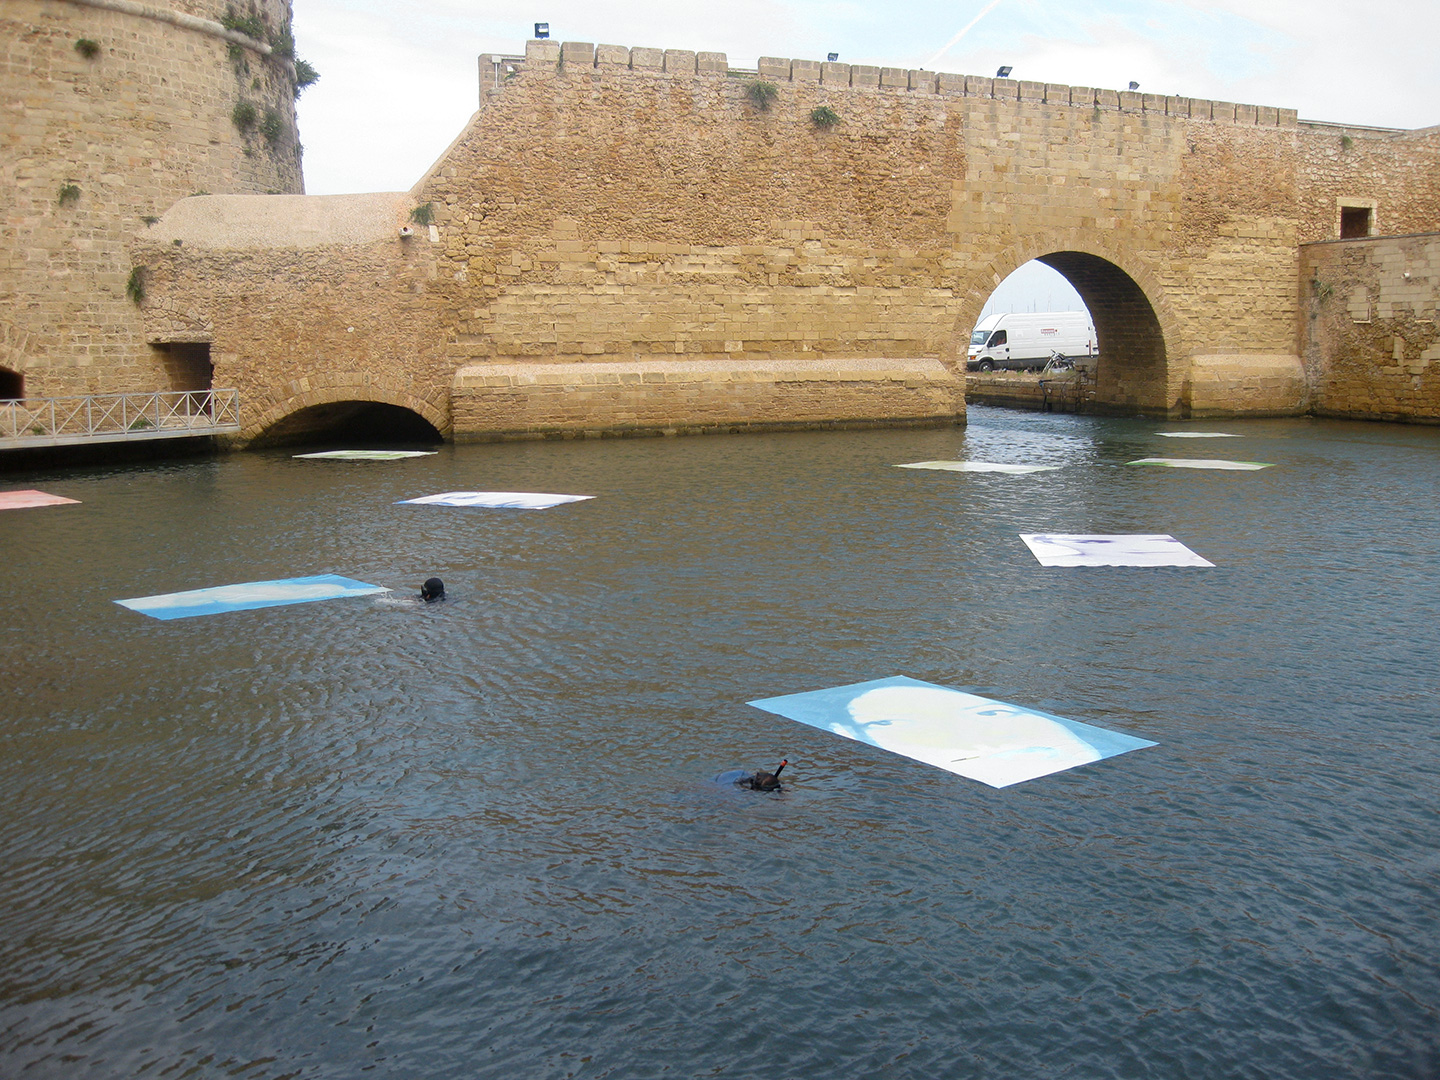 Guillermina De Gennaro, Volver sin Volver, floating installation, partial view, printing on pvc, cm200x300 each, variable dimensions, Castello Forte a Mare, Brindisi, 2010.